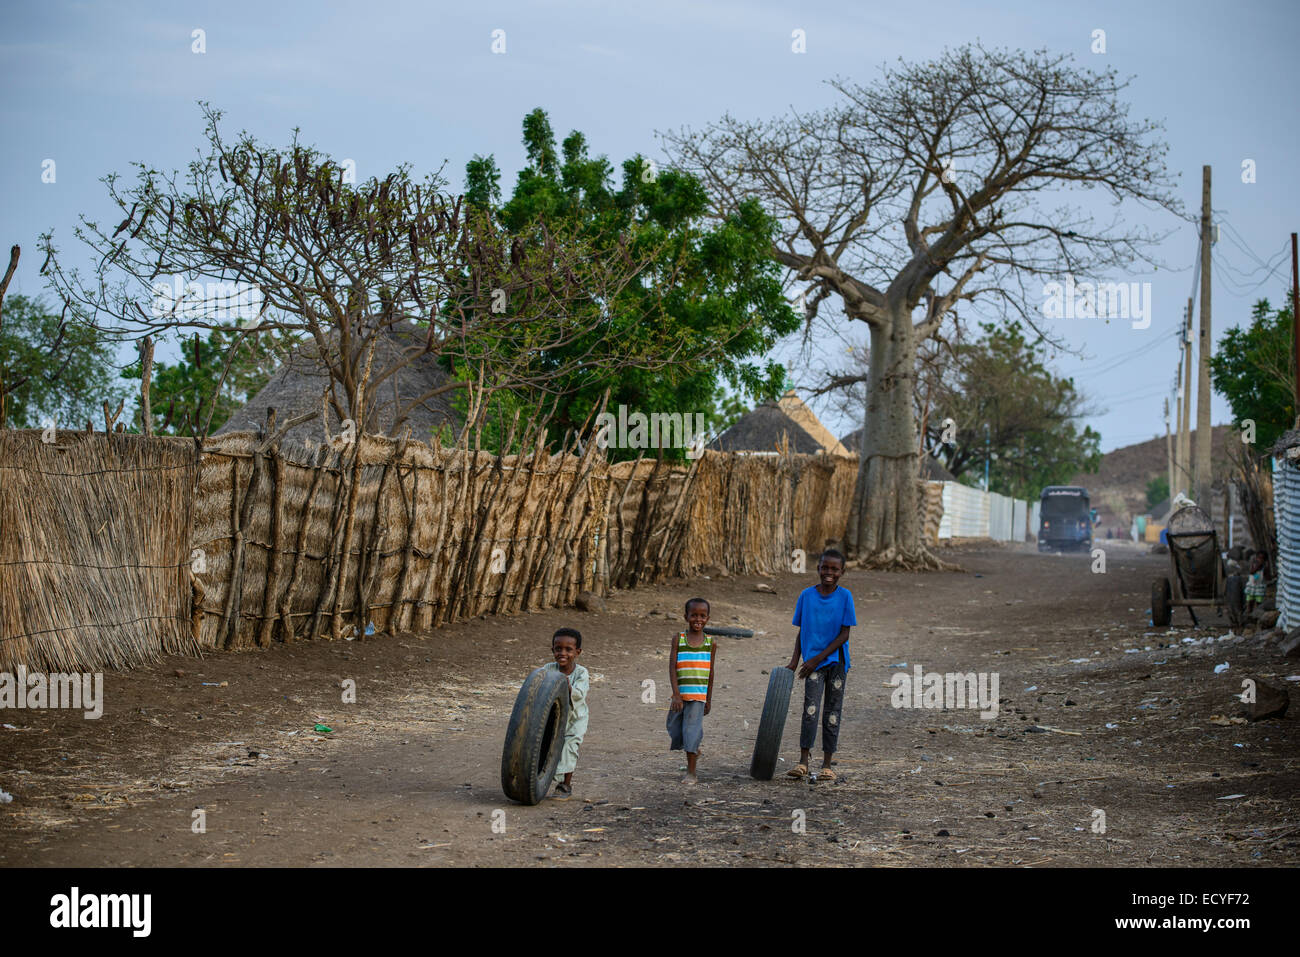 Kids playing with old tires near Al Galabat, Sudan - Stock Image